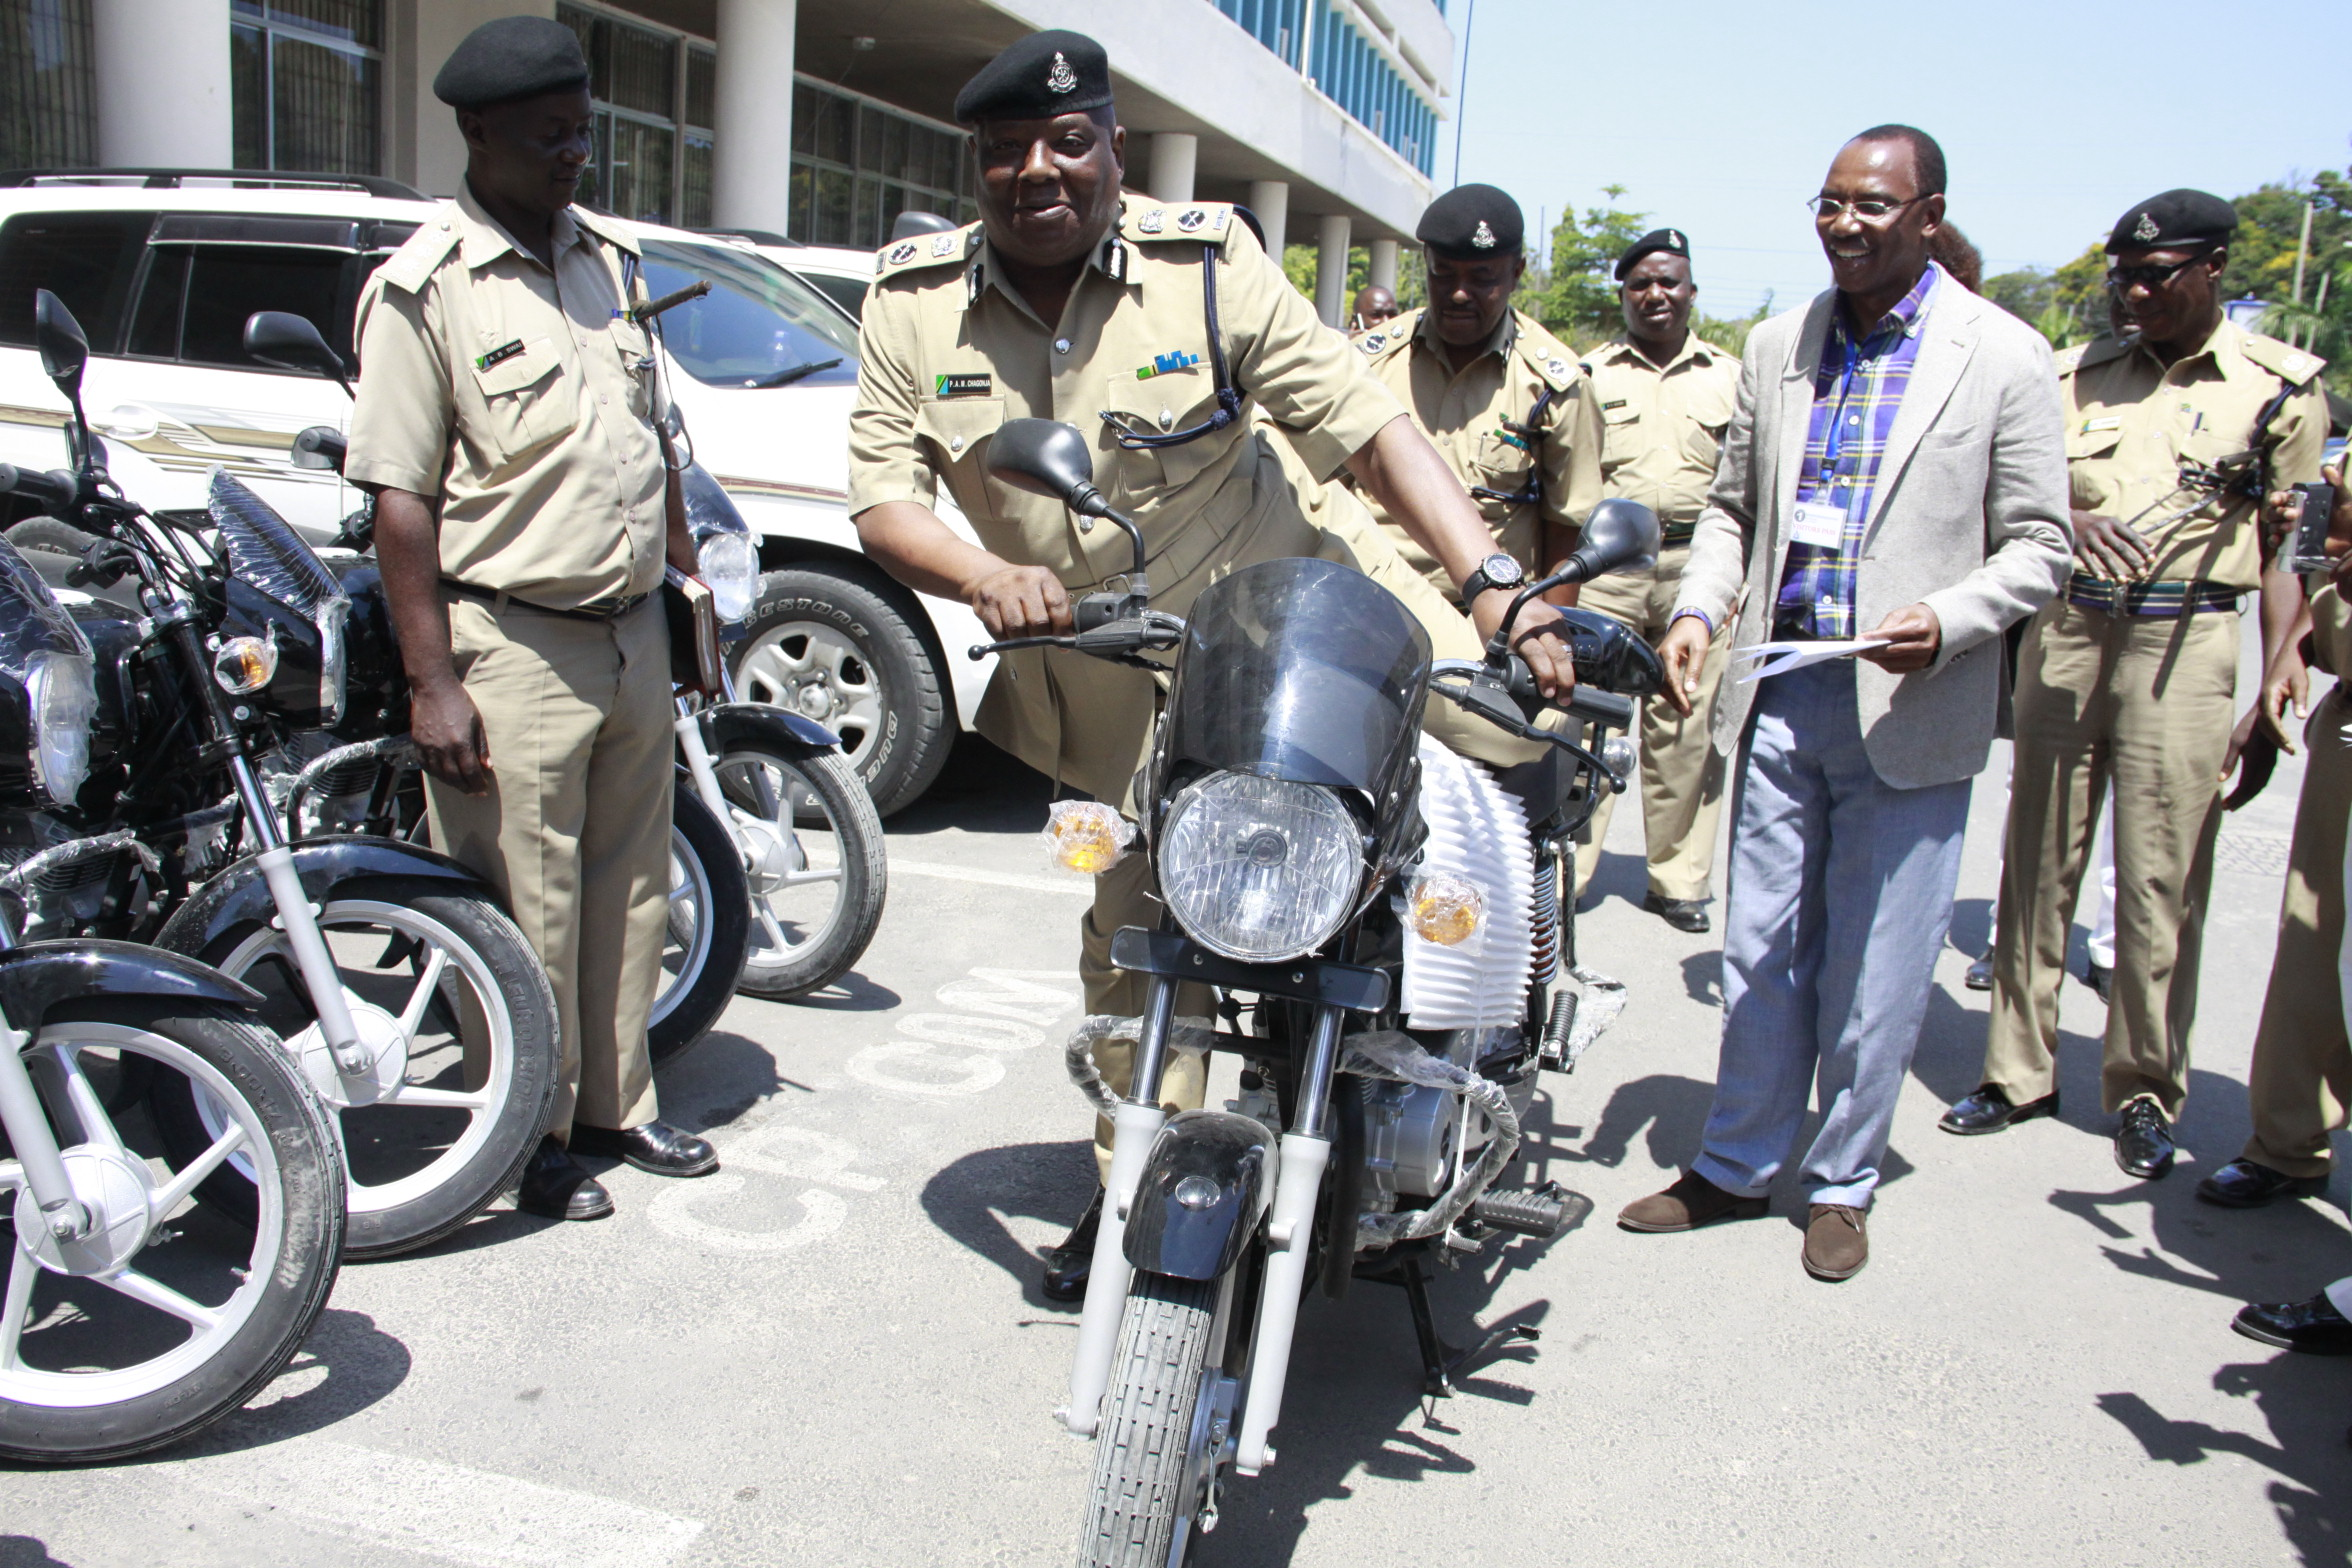 Humphrey Kariuki (Chairman) hands over a motorbike to security officers in Tanzania.